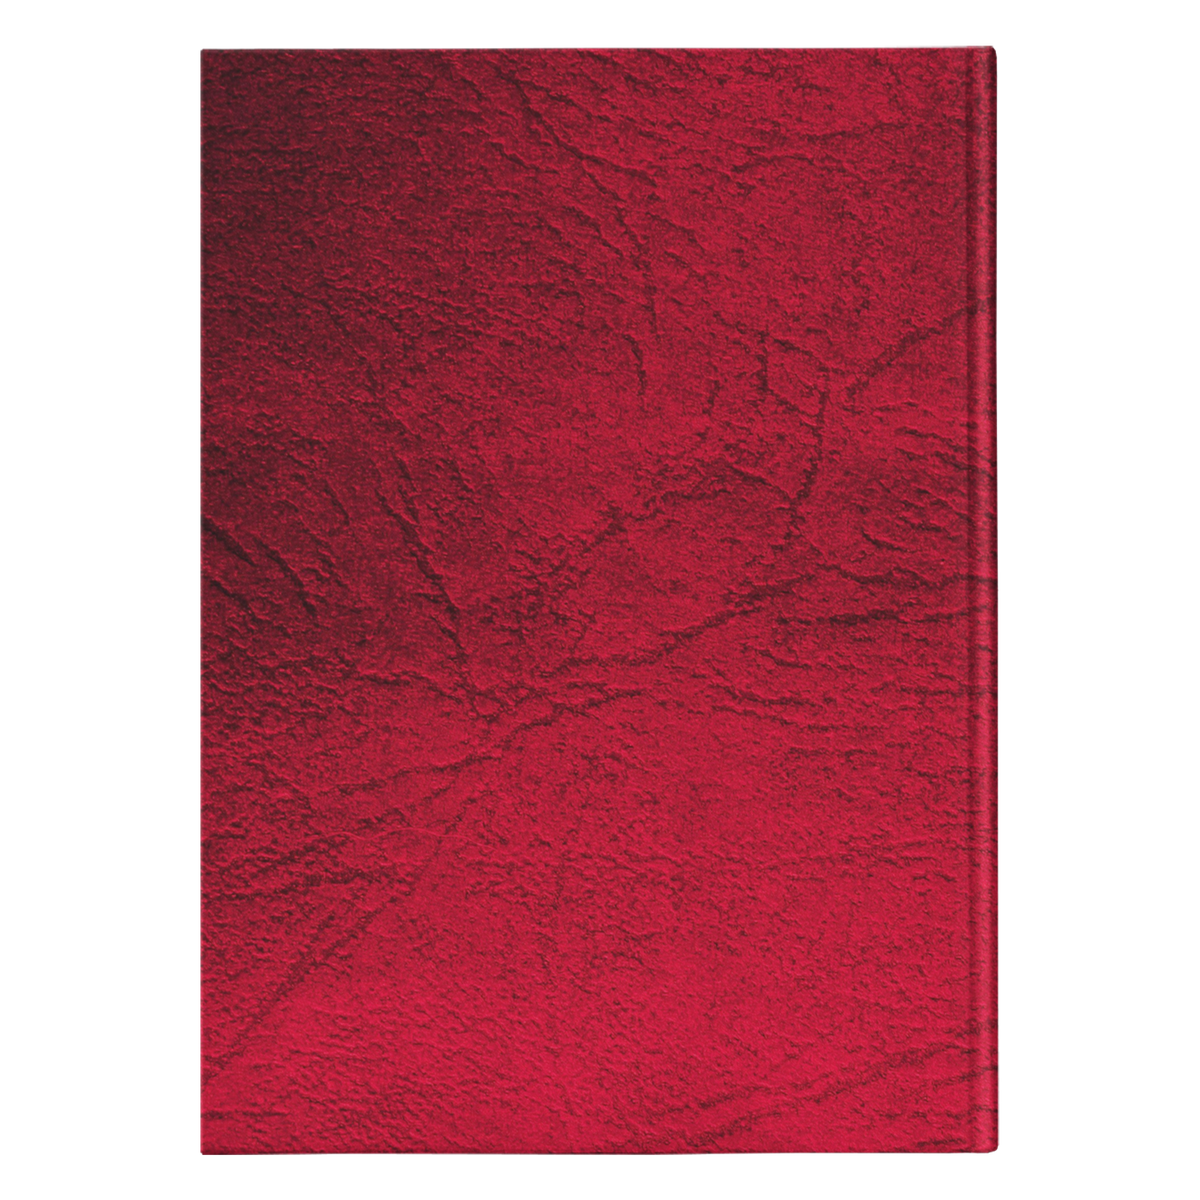 Dominatrix Journal Red Embossed Leather Look Hardcover Notebook